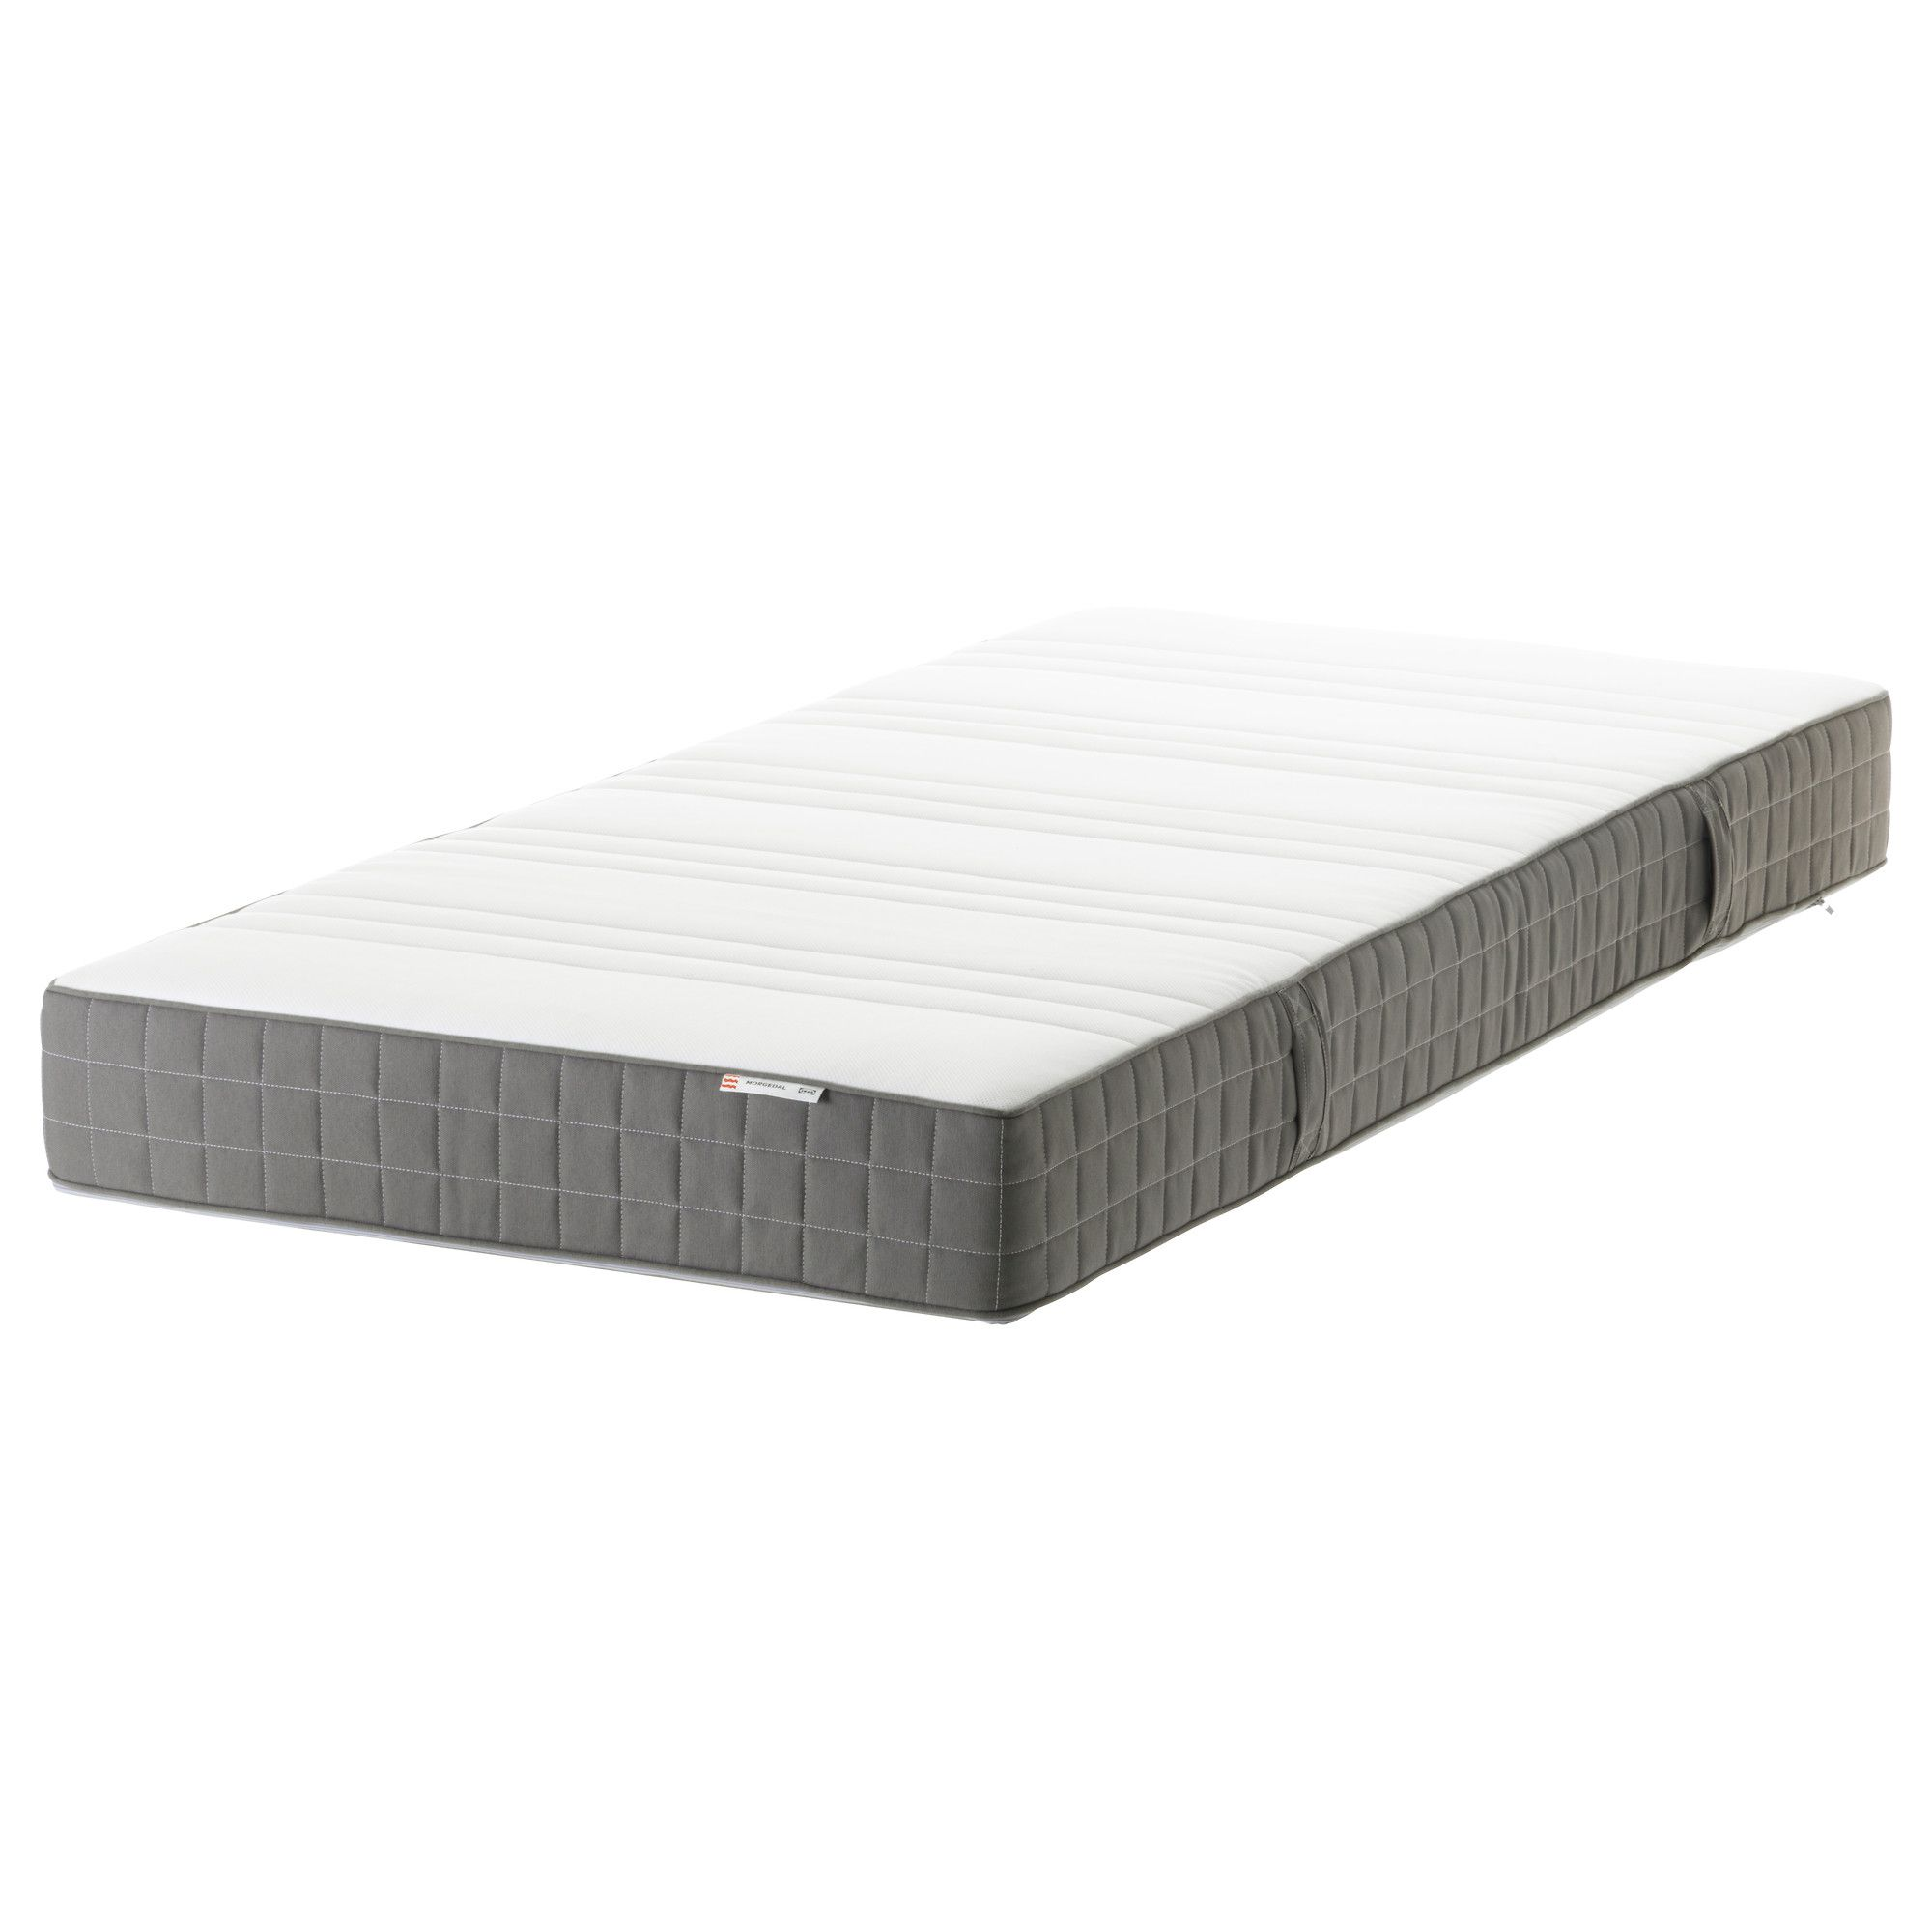 Ikea Morgedal Foam Mattress Medium Firm Dark Gray Products  # Meuble Tv En Fer Ikea